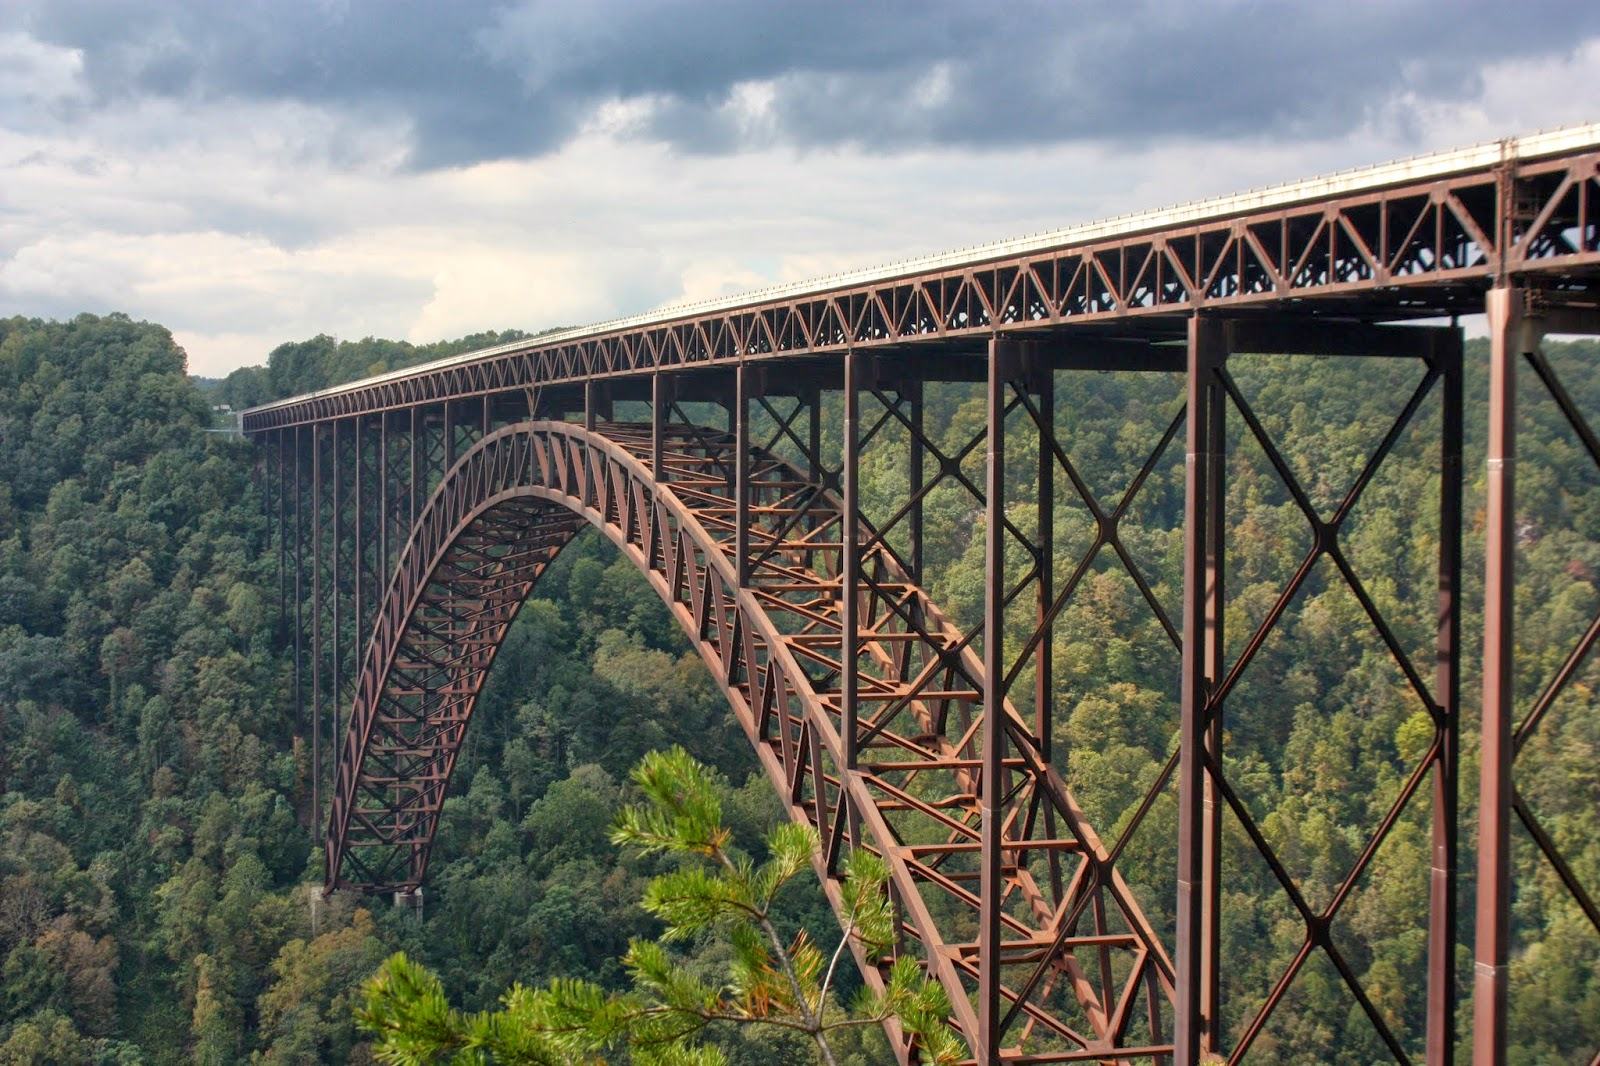 New River Gorge Bridge New river gorge bridgeNew River Gorge Bridge Fall